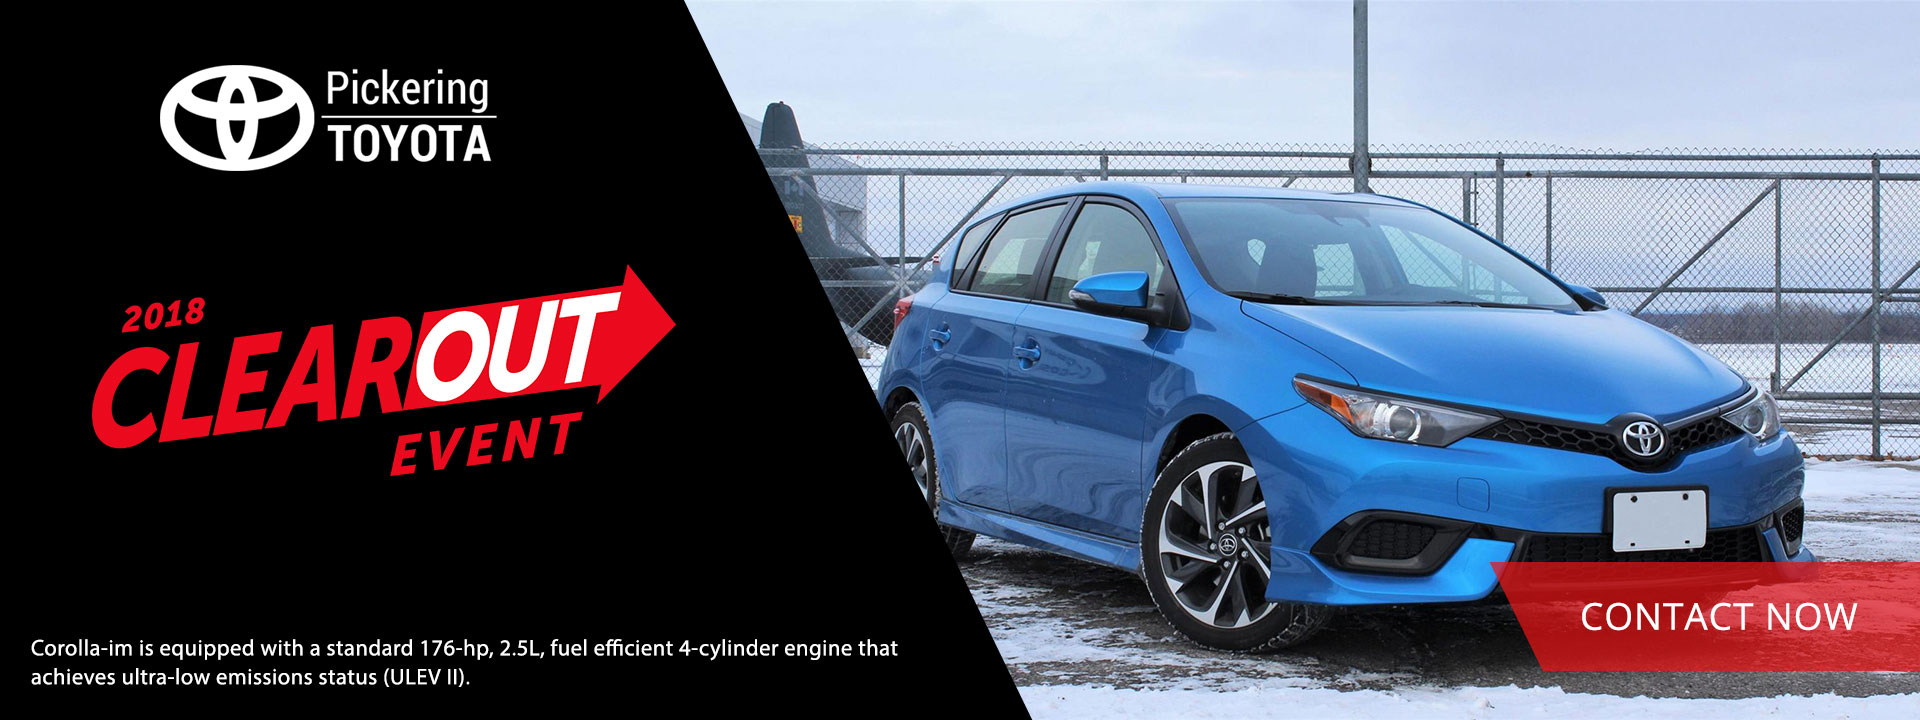 2018 Toyota Corolla-IM Clear Out Event Prices | Pickering Toyota